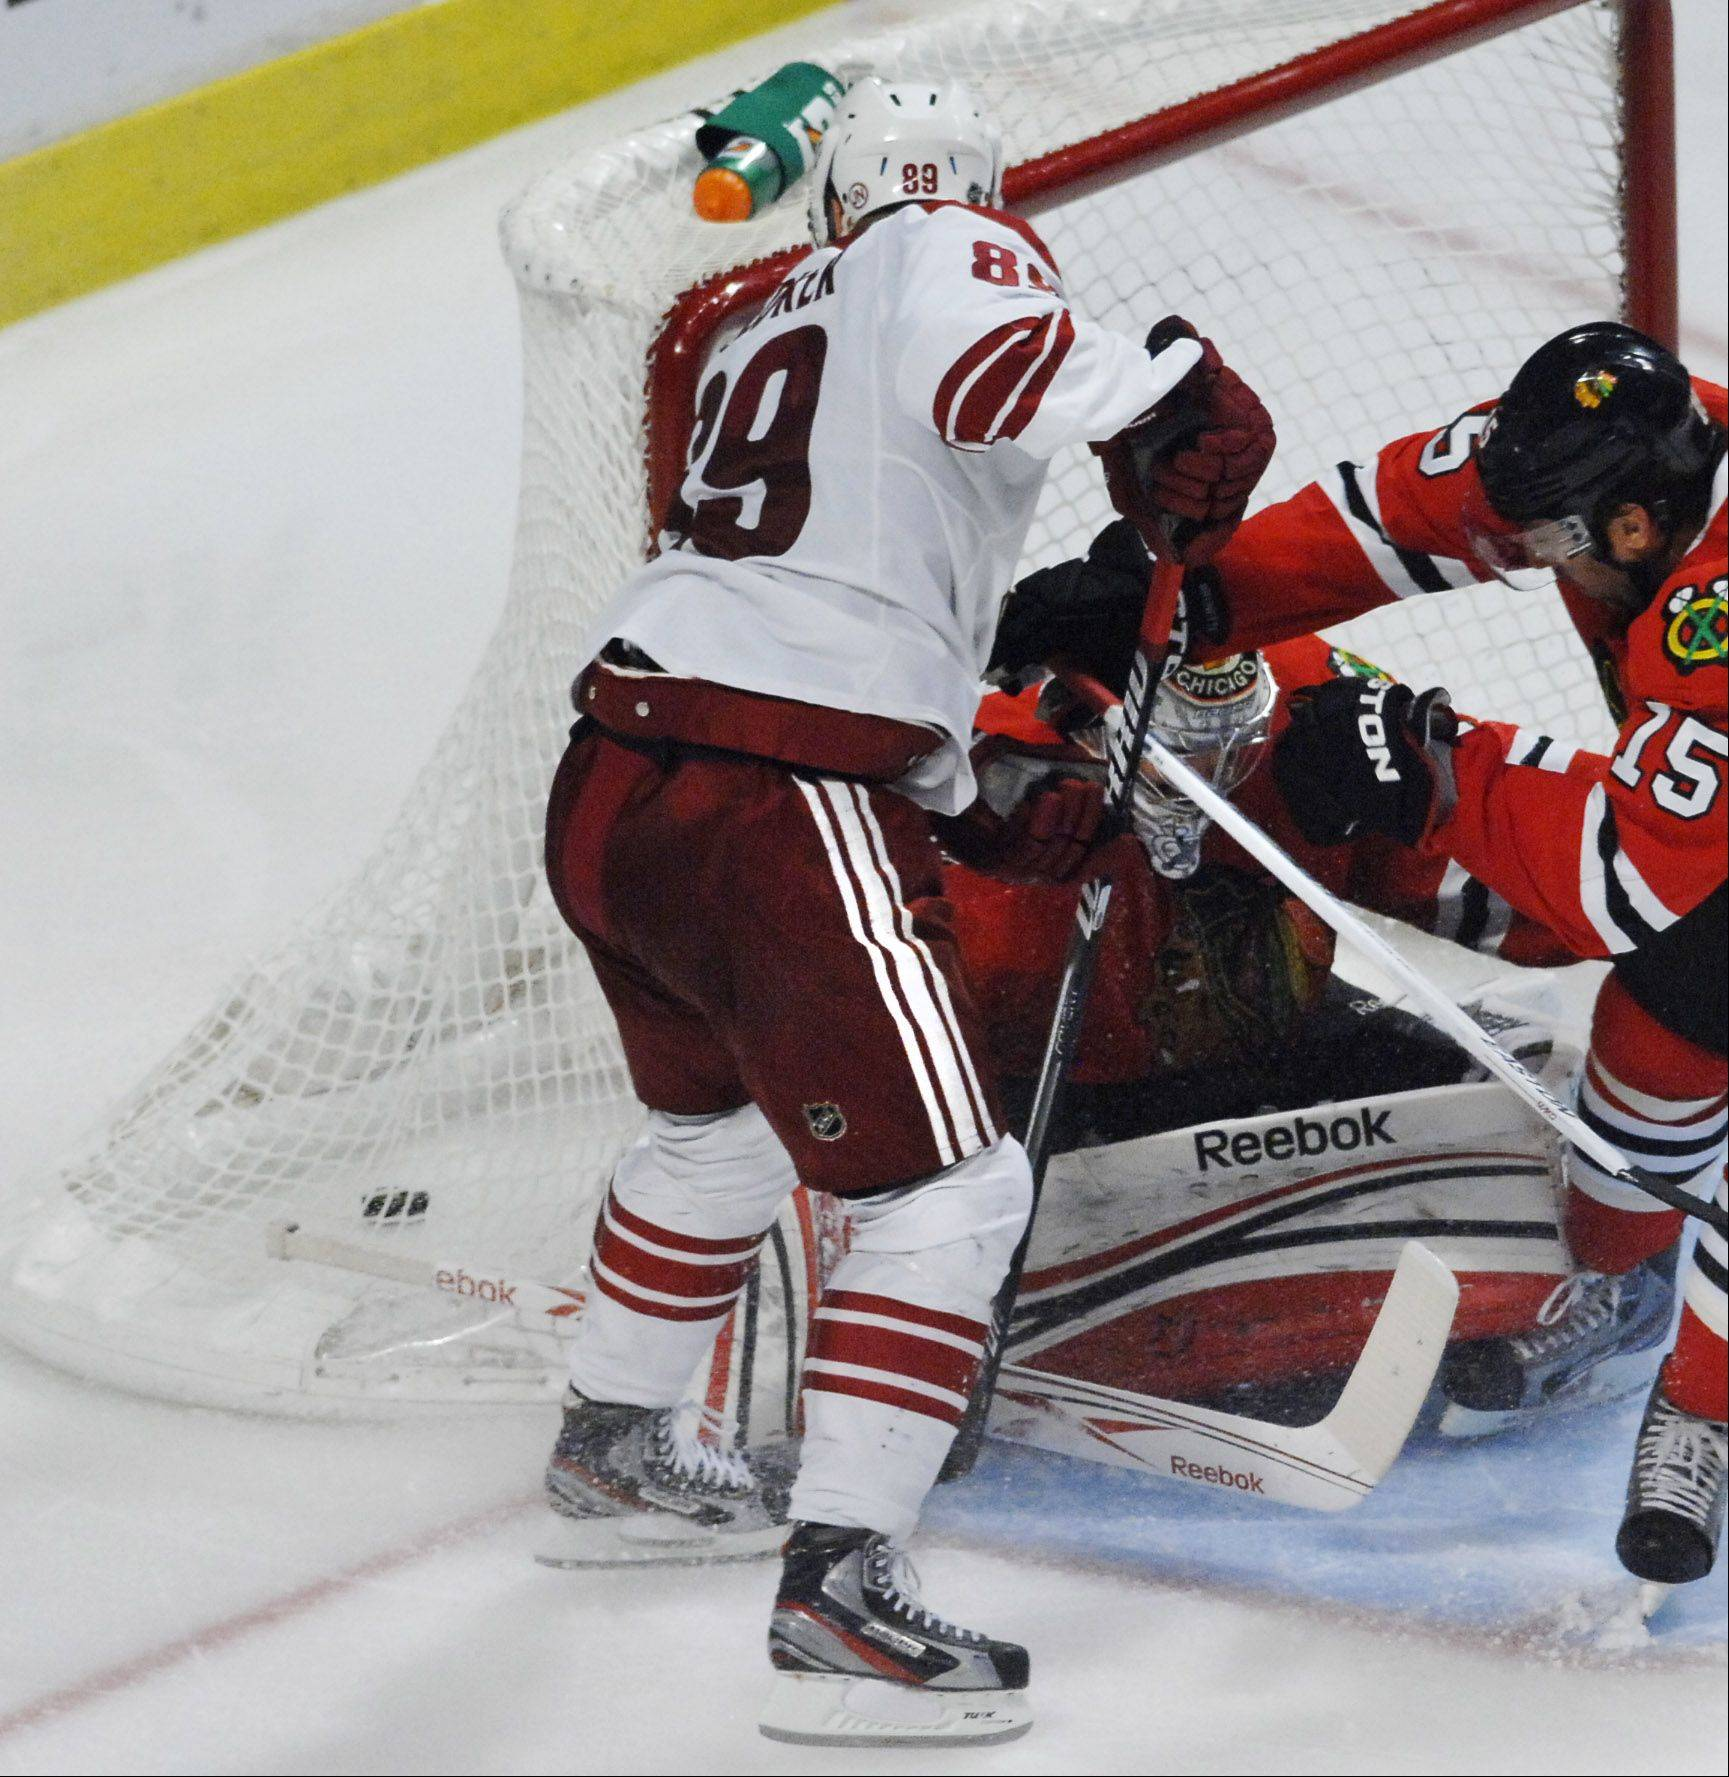 Phoenix Coyotes' right wing Mikkel Boedker slips the puck in the net behind Chicago Blackhawks goalie Corey Crawford to win in overtime .